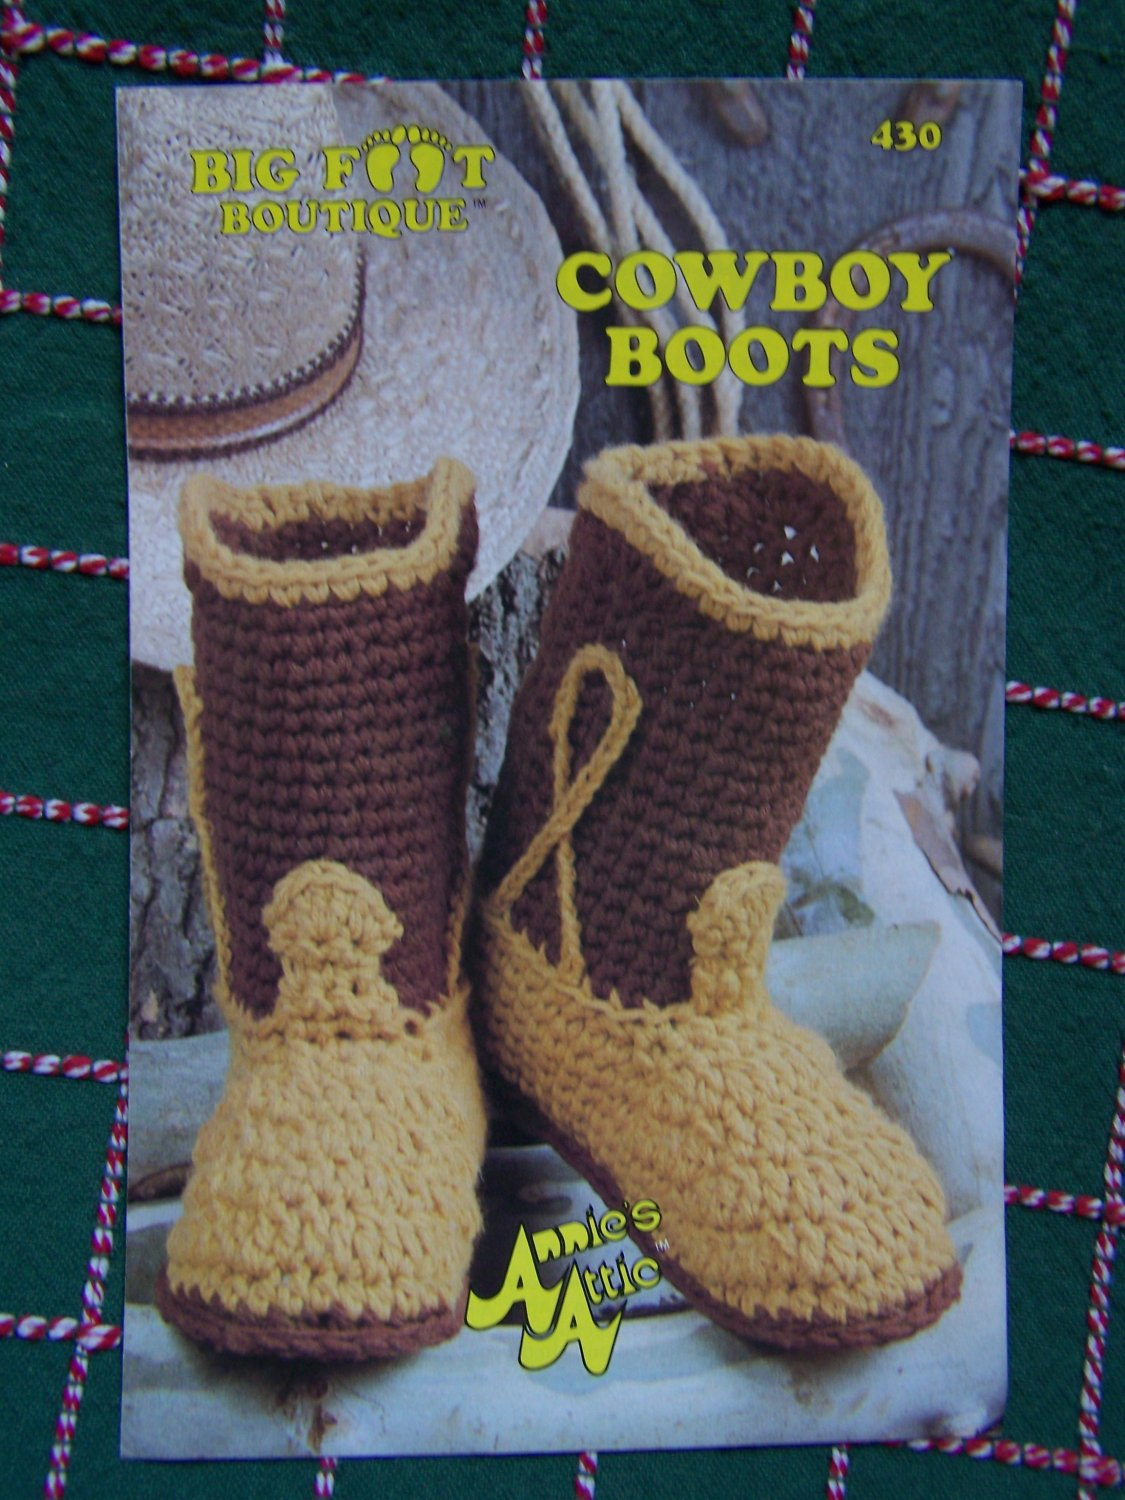 S&H Free USA Vintage Cowboy Boots Annies Attic Crochet Pattern 430 House Shoes Slippers